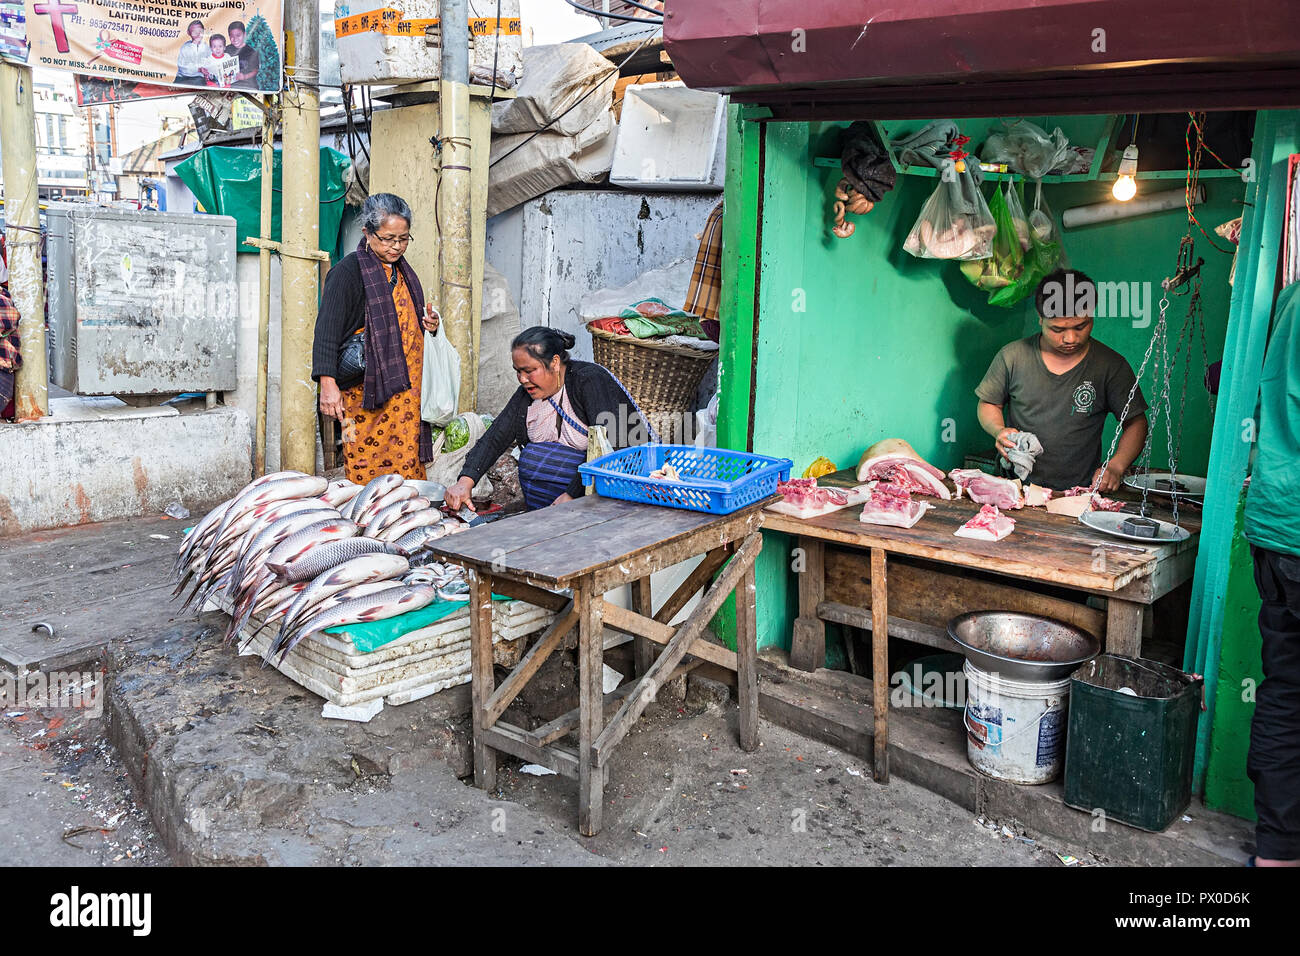 Shop selling wet fish and meat, Shillong, Meghalaya, India - Stock Image